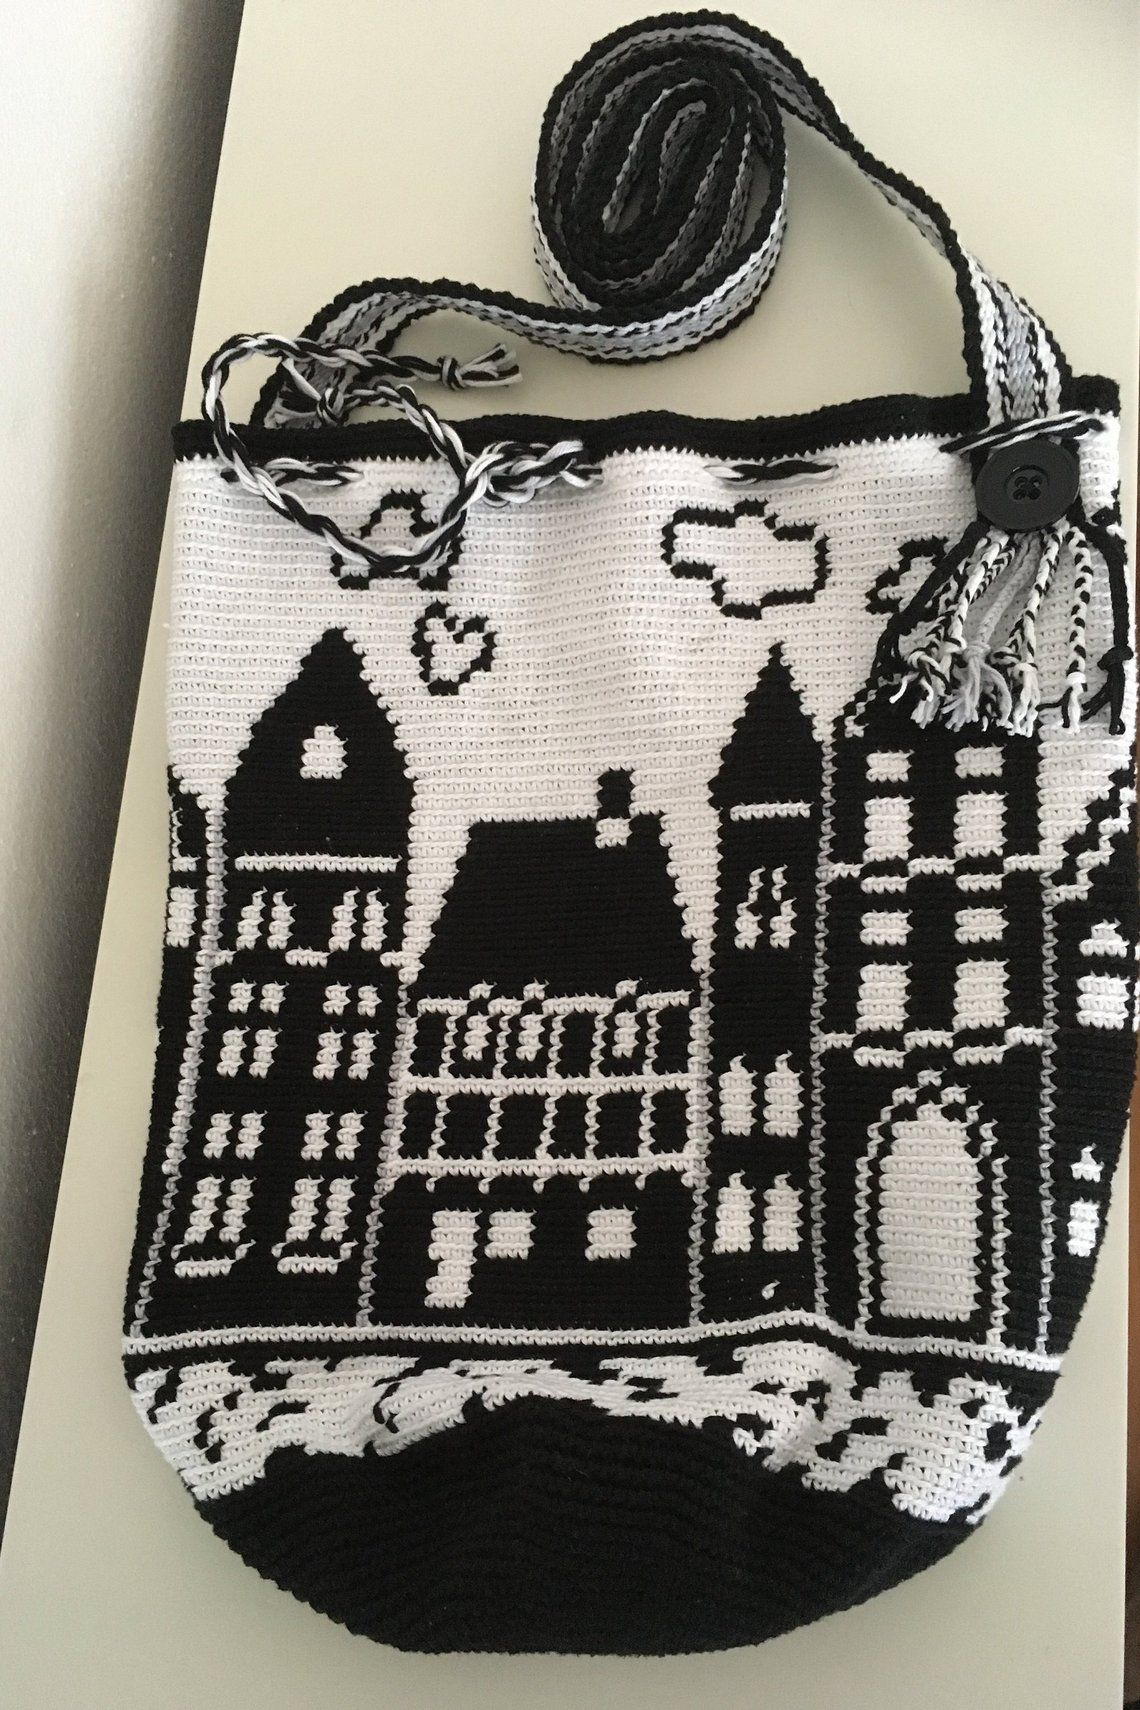 Photo of Wayuu mochila bag with tapestry technique, Amsterdam Canal Houses, Crochet pattern, black and white, PDF-file, DIY